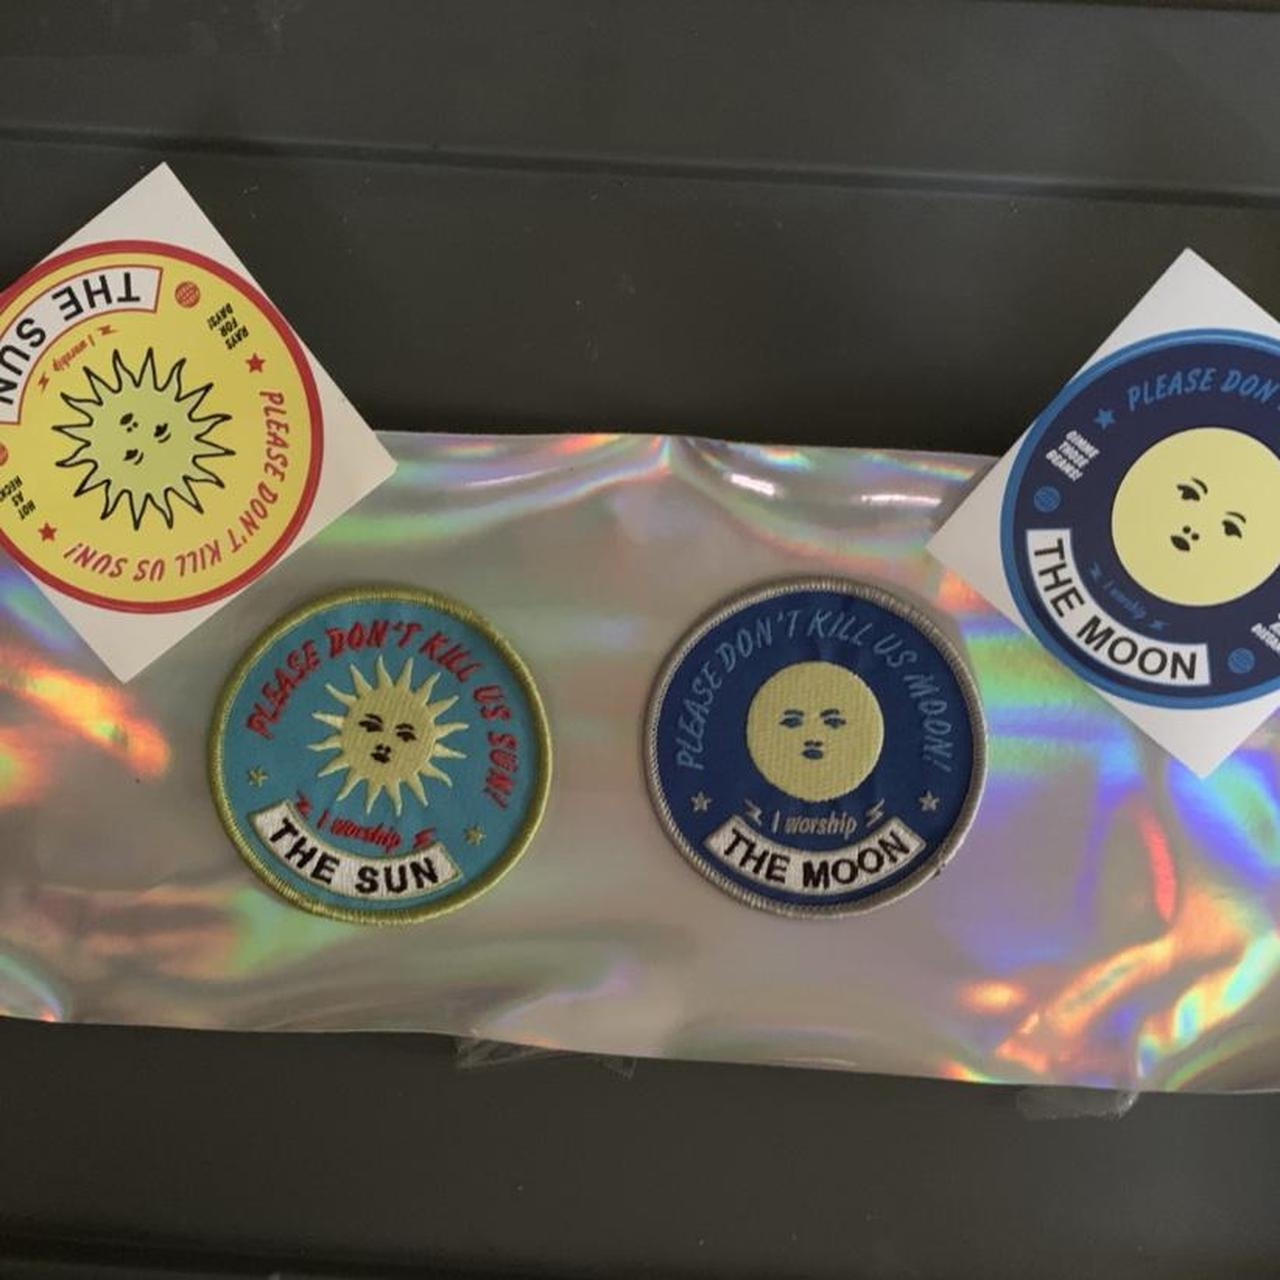 Product Image 1 - sun/moon patches and matching stickers.